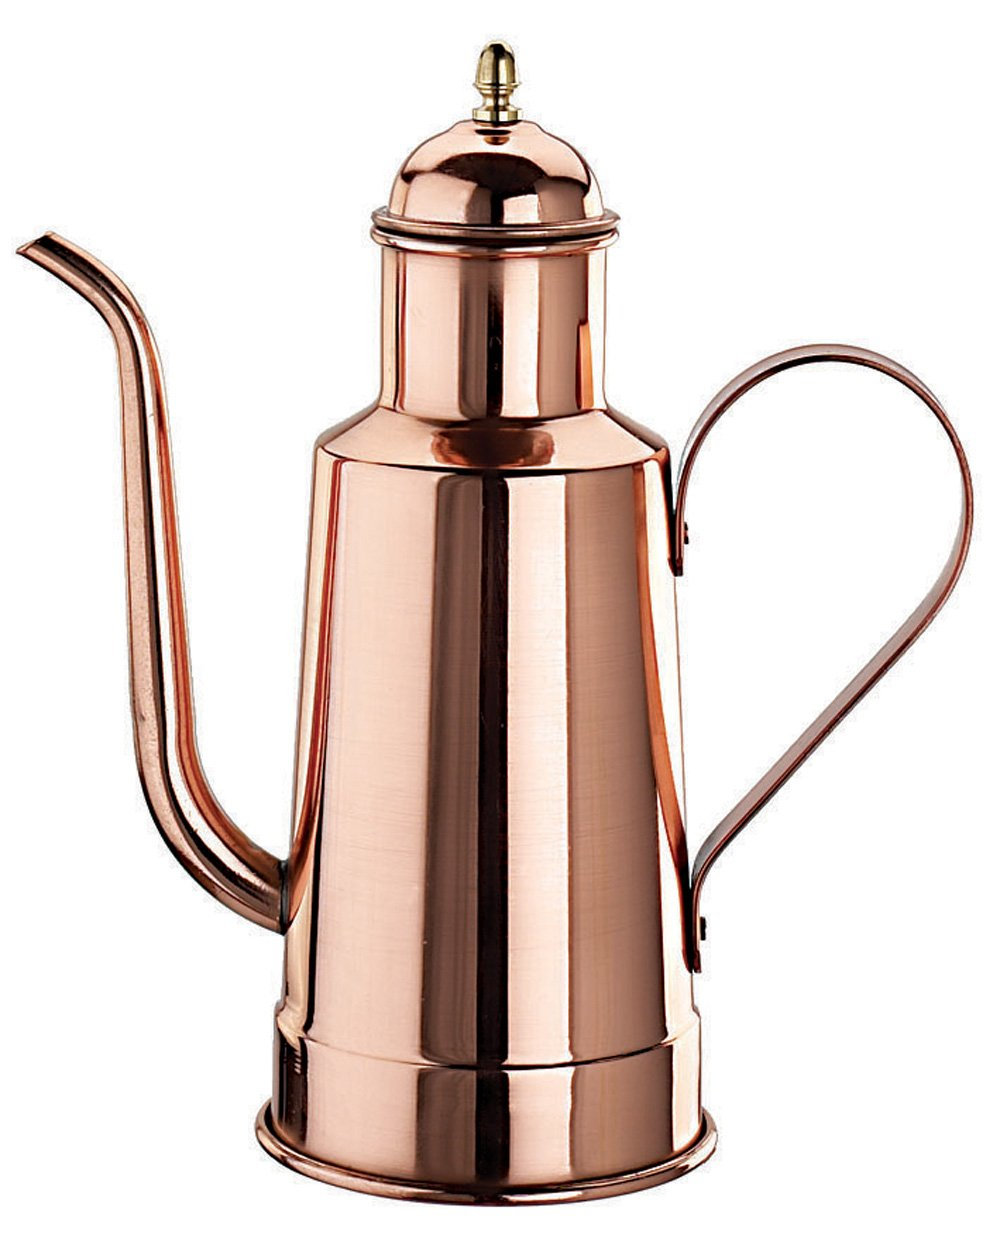 Paderno World Cuisine 10-5/8-Inch High Copper/Tin Oil Dispenser by Paderno World Cuisine